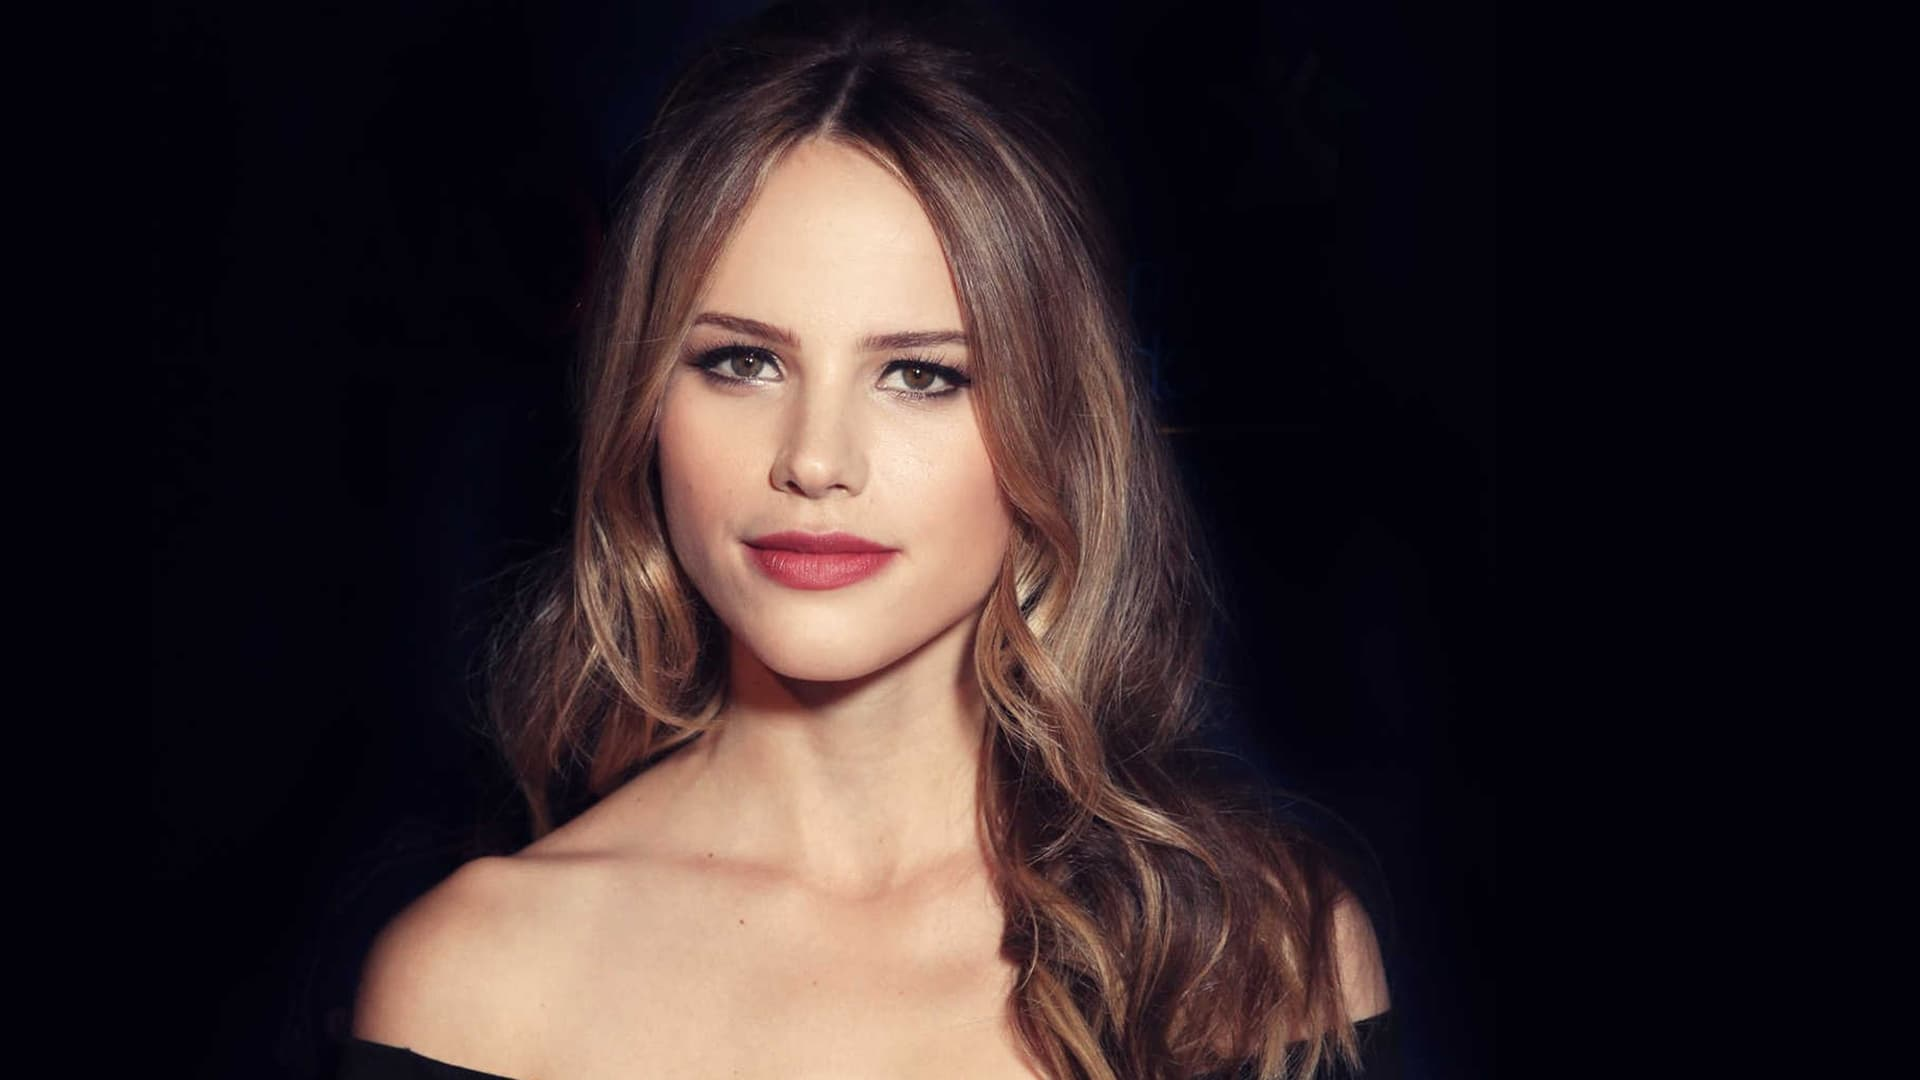 Halston Sage Wallpapers Hd High Quality Resolution Download